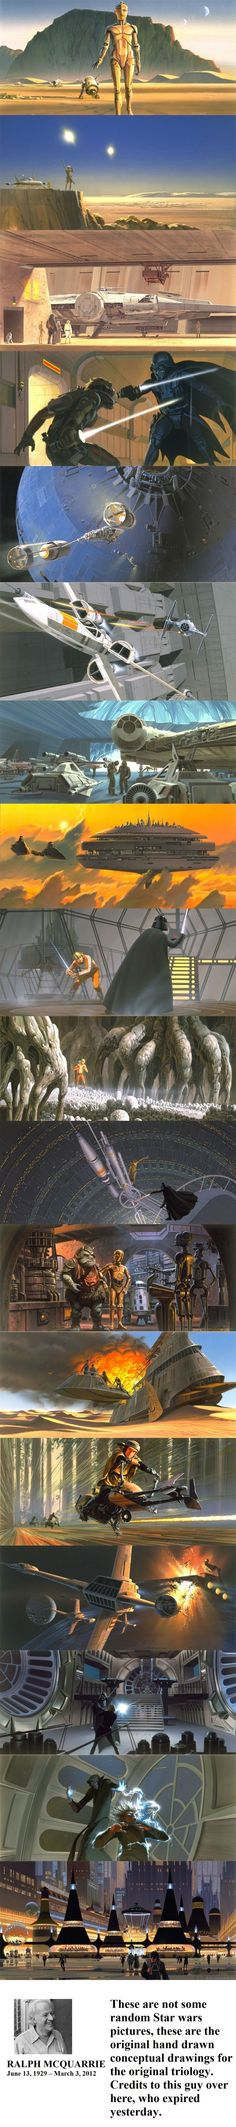 McQuarrie Star Wars Concepts